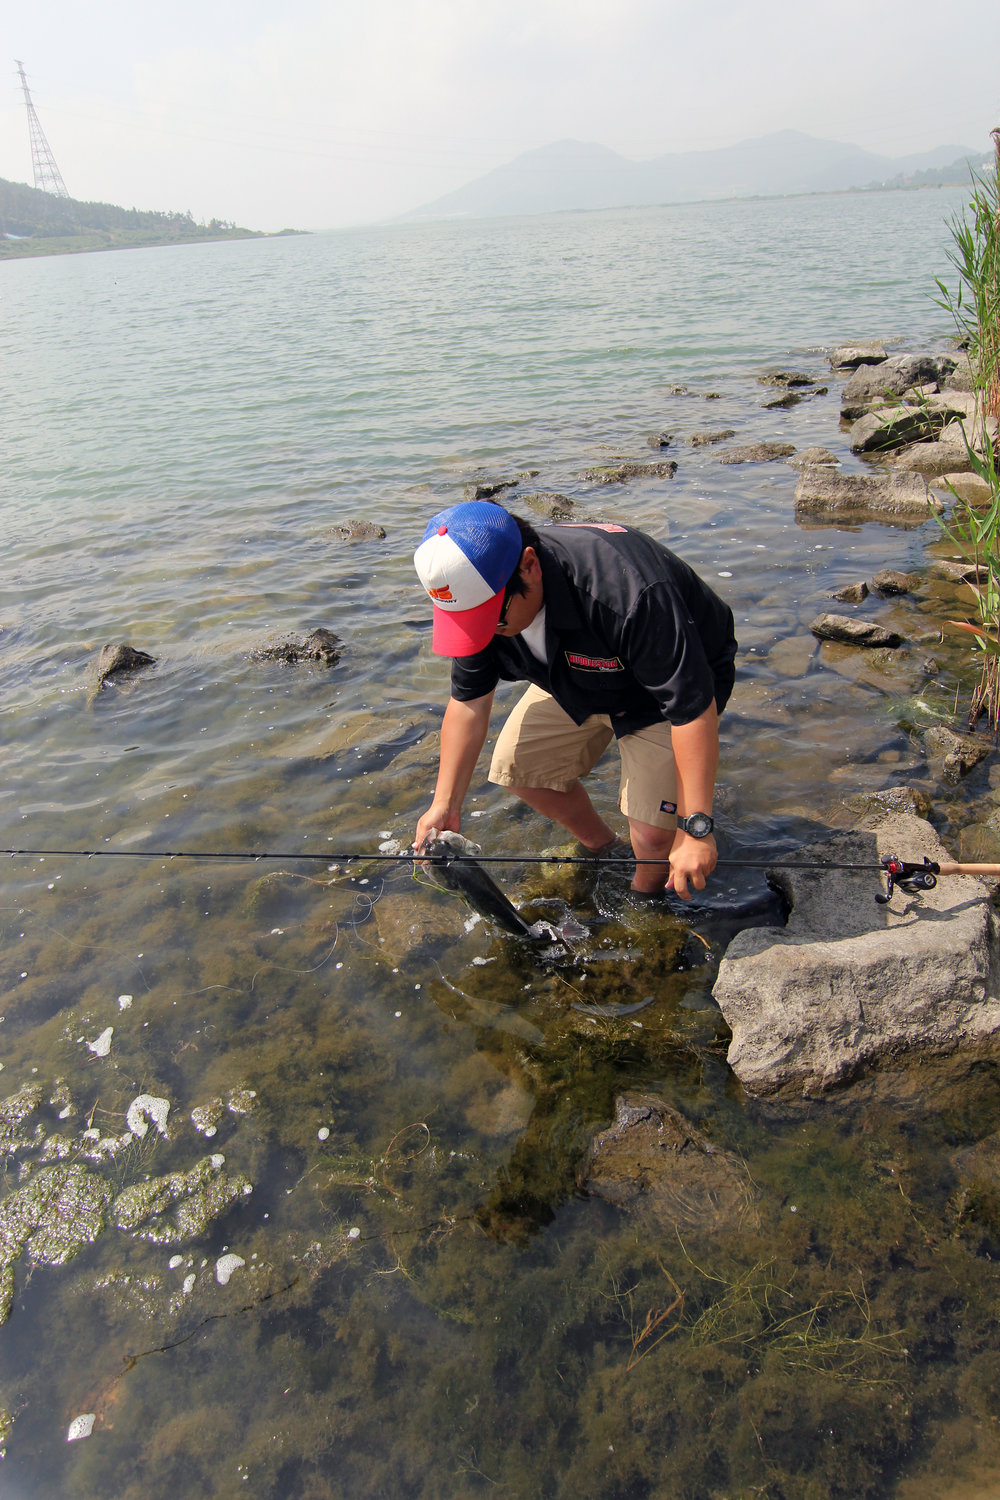 Pic. 8. Kang releases a bass on the rocky shoreline of Geumho Lake.